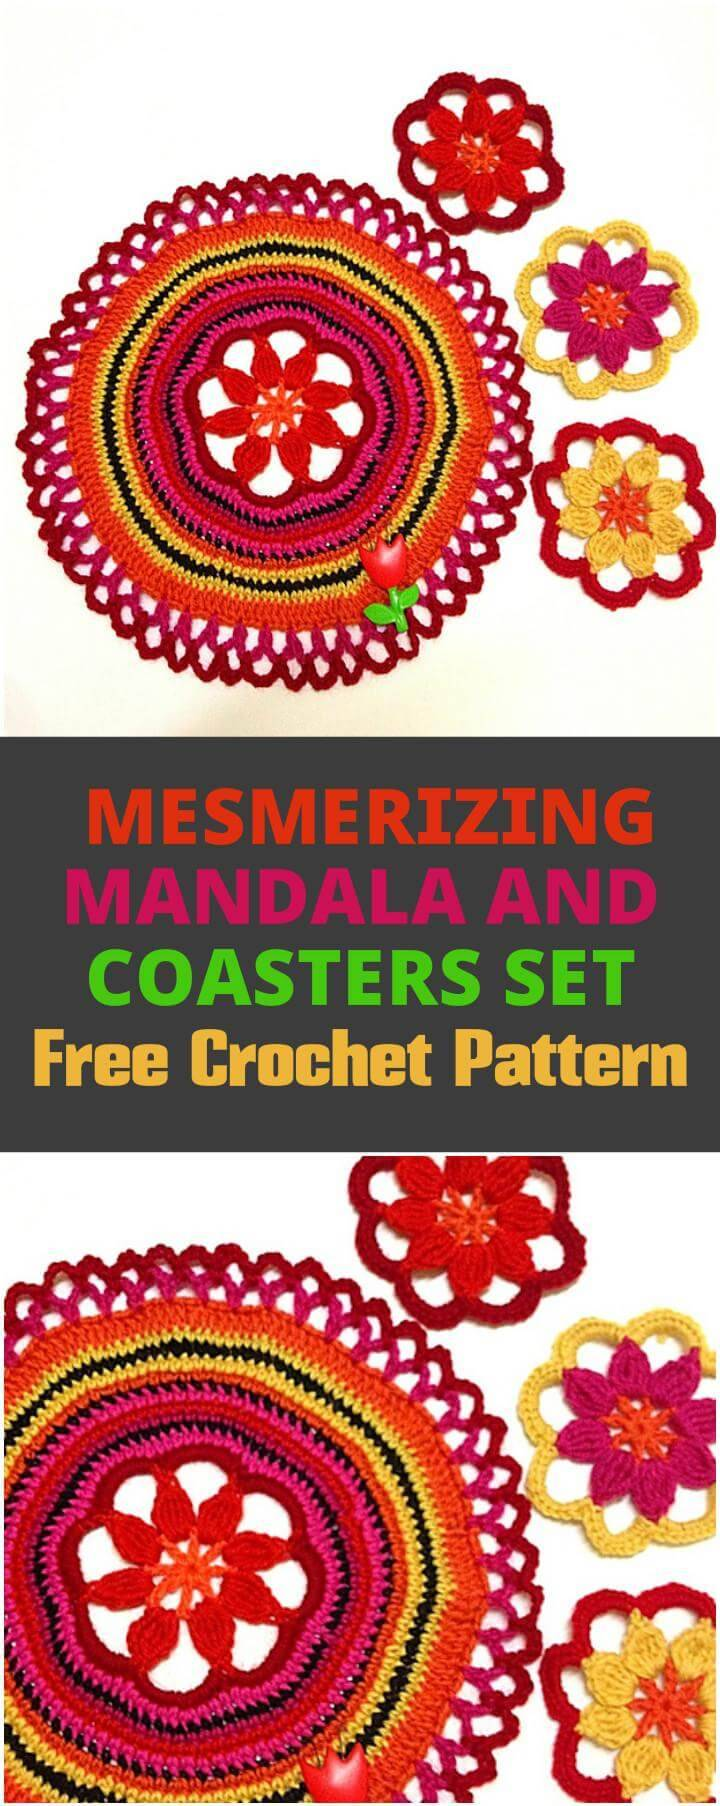 crochet mandala and coasters set